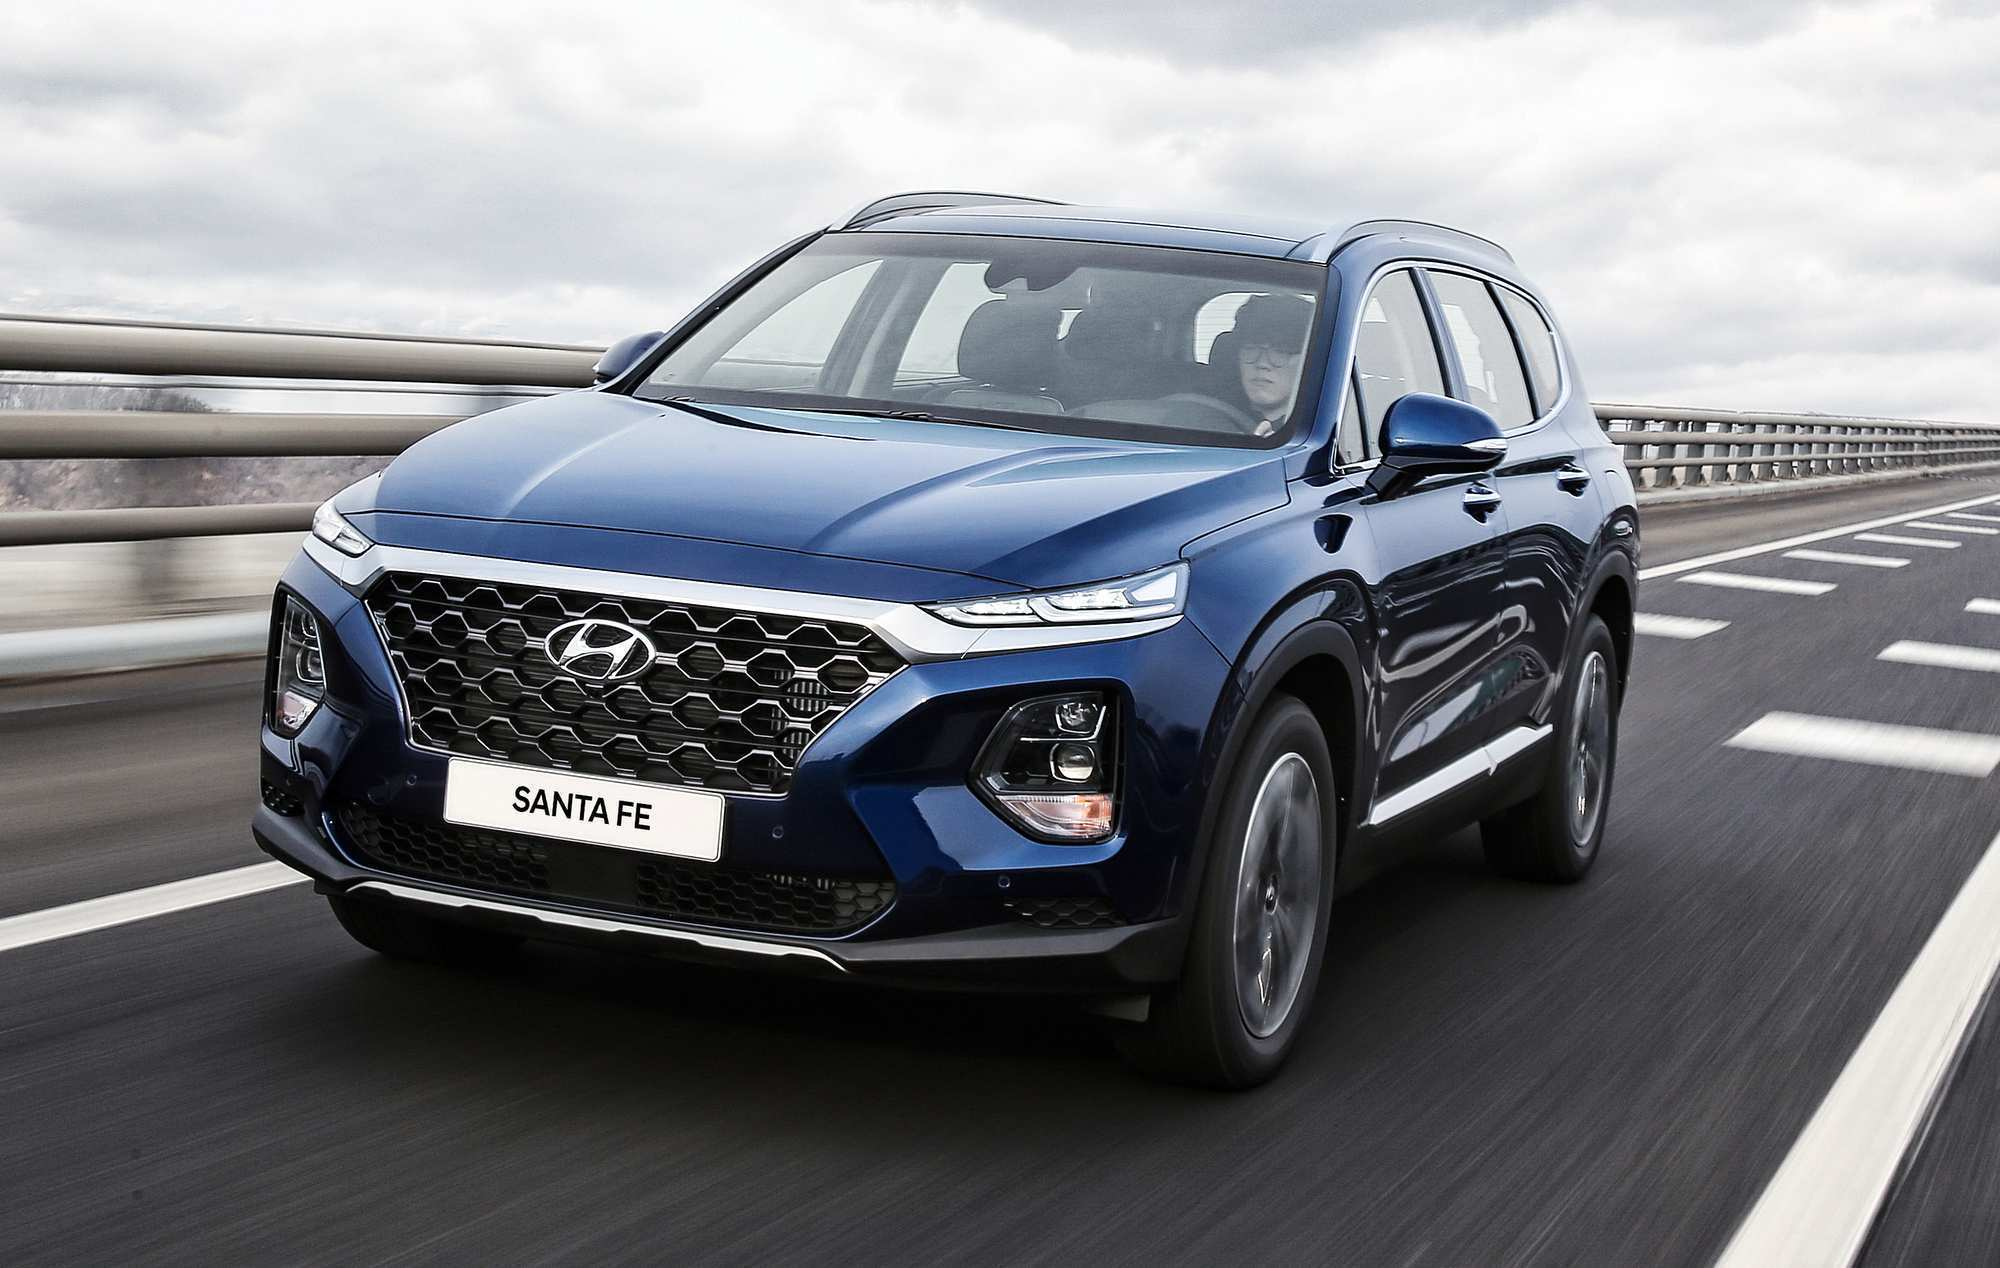 27 Best Review 2019 Hyundai Santa Fe Engine Photos by 2019 Hyundai Santa Fe Engine